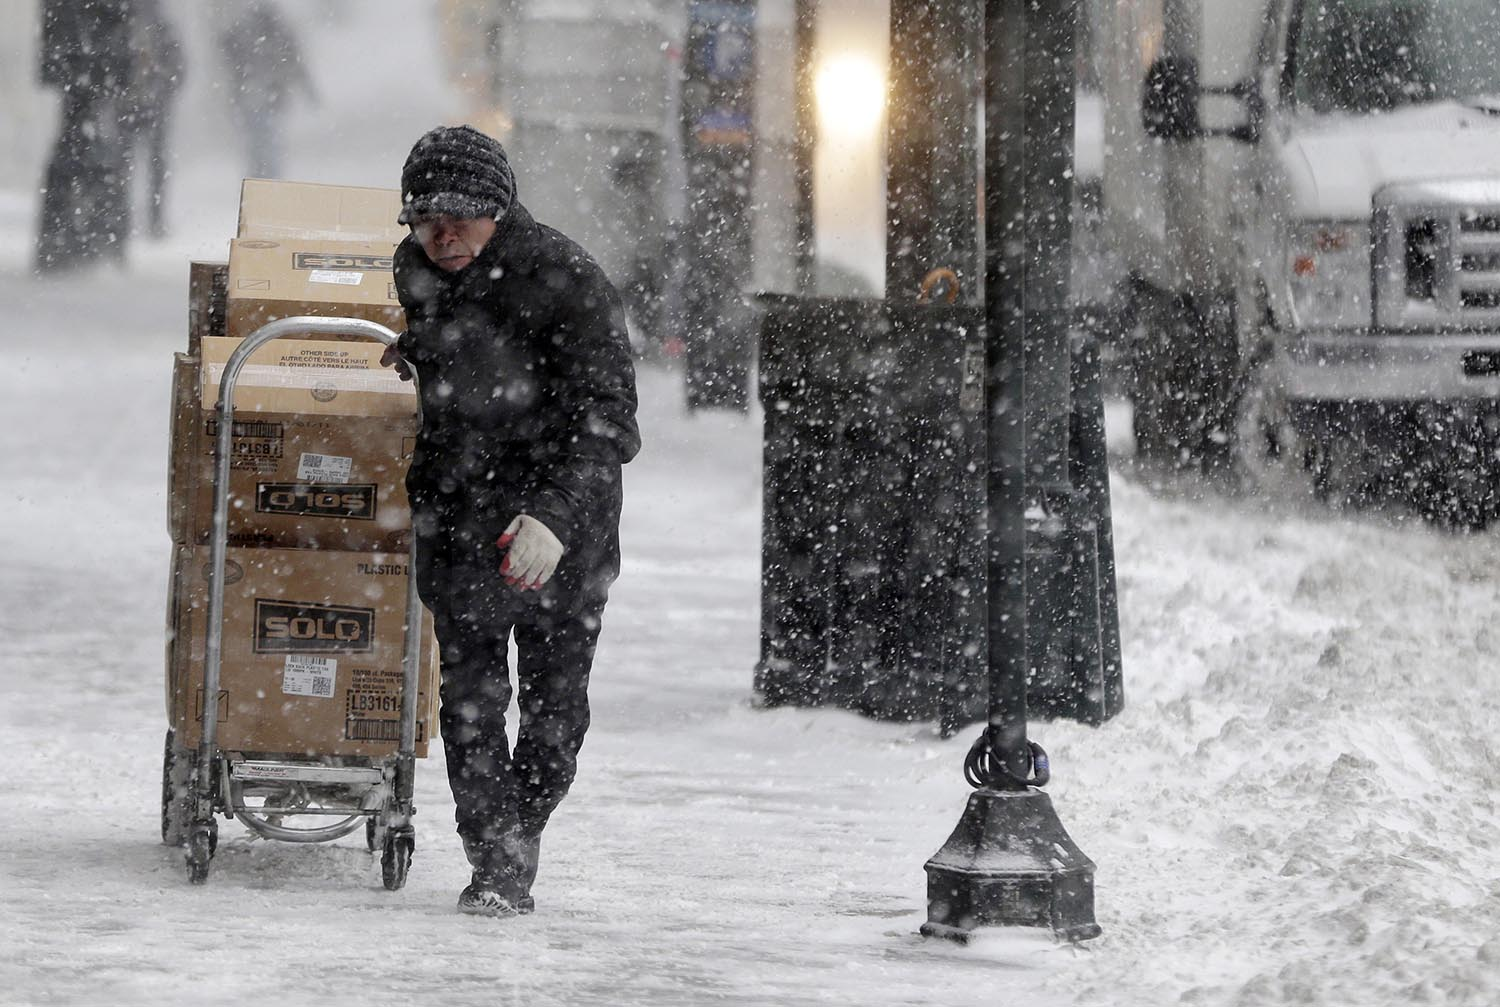 "<div class=""meta image-caption""><div class=""origin-logo origin-image ap""><span>AP</span></div><span class=""caption-text"">A man struggles to make a delivery through snowy streets in New York, Thursday, Jan. 4, 2018. (AP Photo/Seth Wenig)</span></div>"